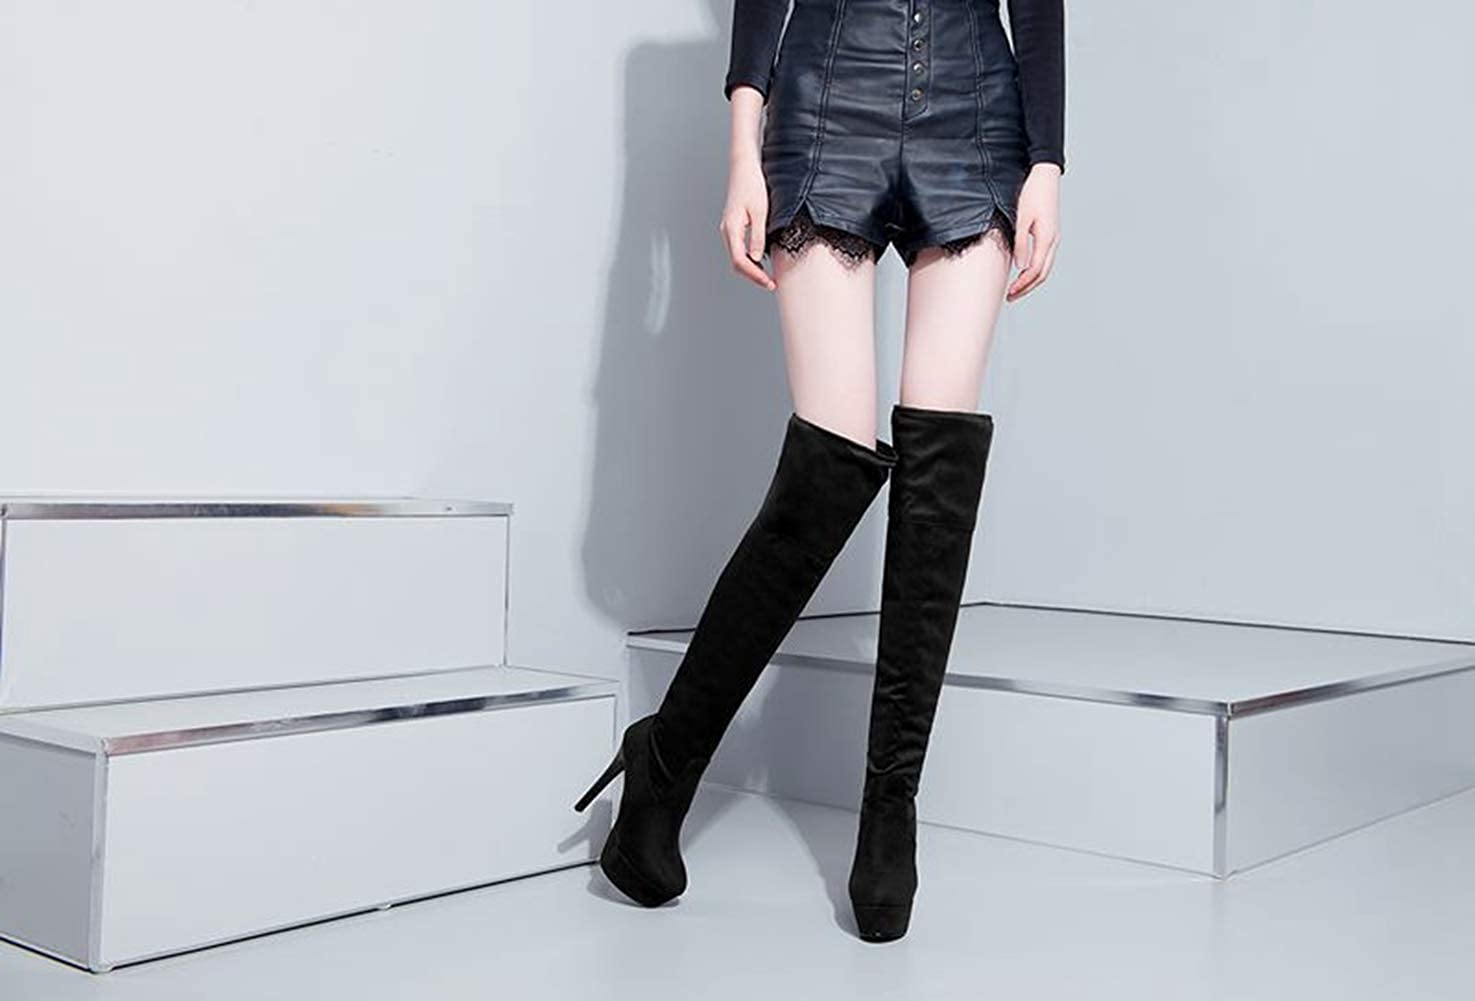 Hoxekle Knee High Boots Thin High Heel Over The Knee Women Long Boot Concise Black Grey Soft Leather Platform